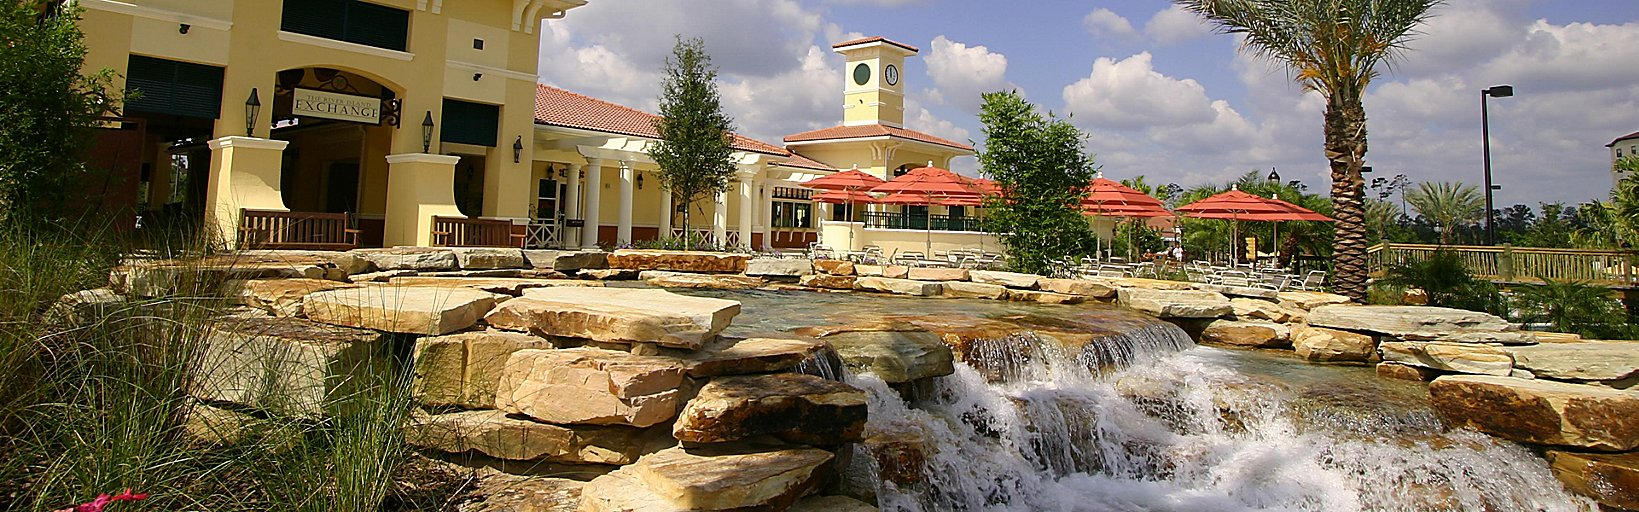 . Orlando Hotels With Pools Near Kissimmee  FL   Holiday Inn Club